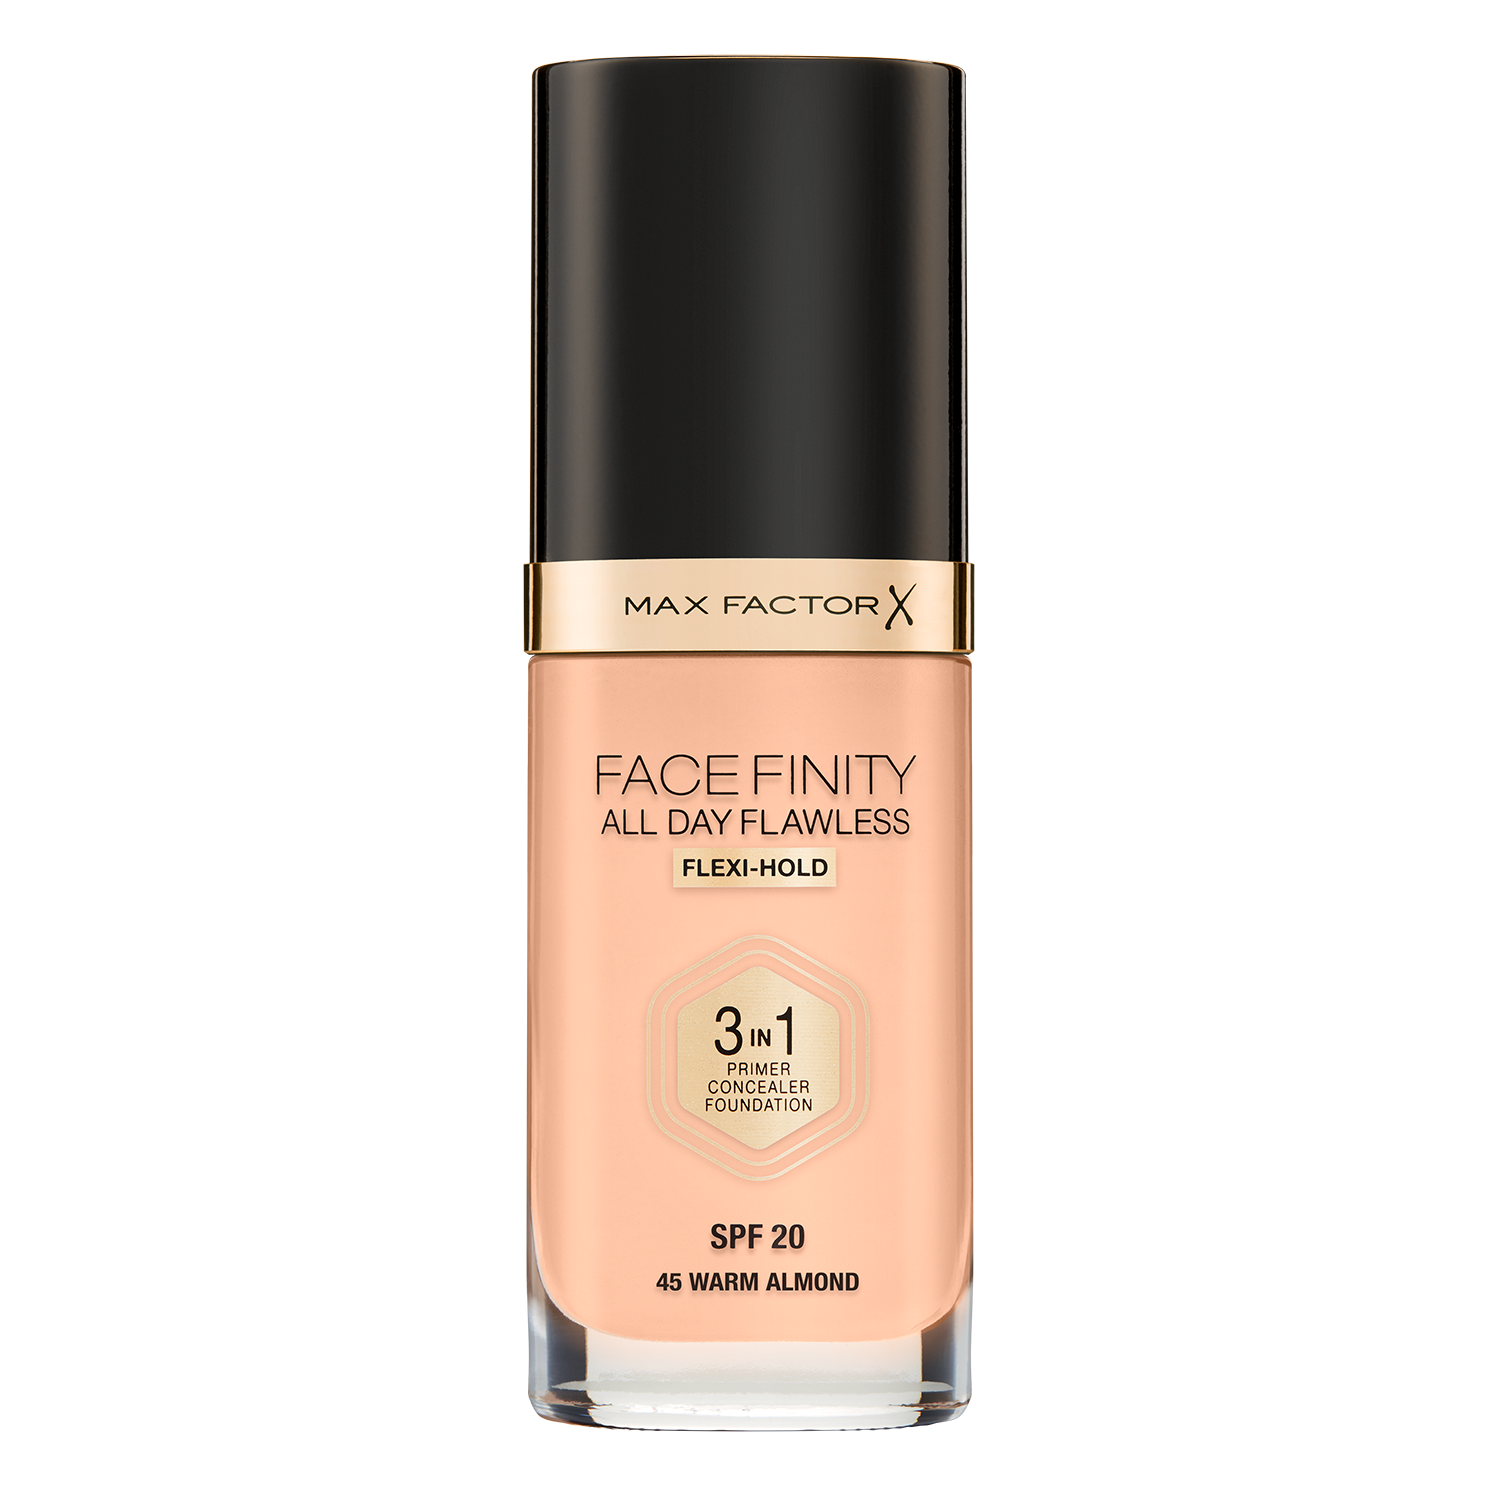 Facefinity All Day Flawless 3-in-1 Foundation in Light Ivory 40